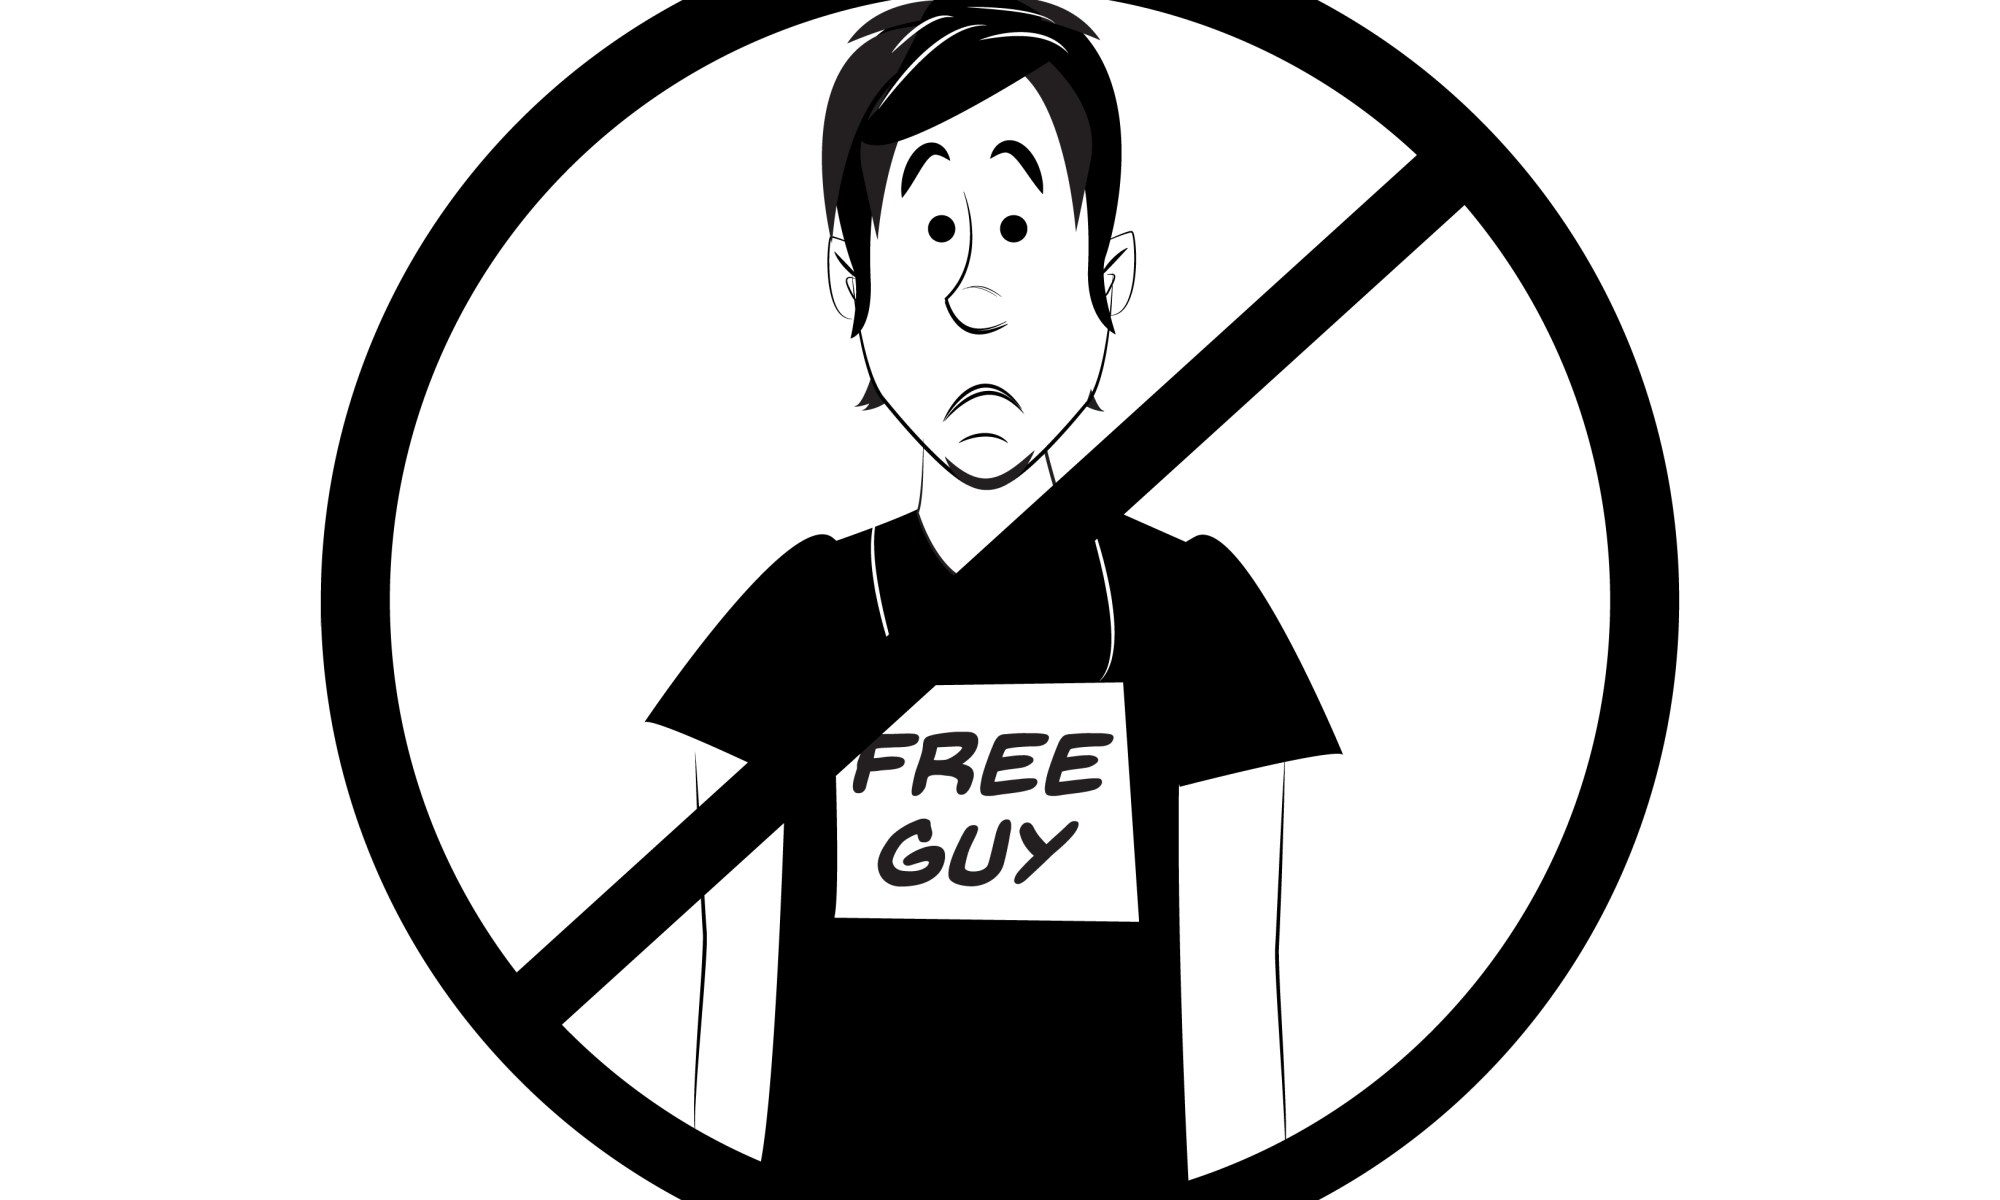 Cartoon of a man wearing a sign that says he works for free